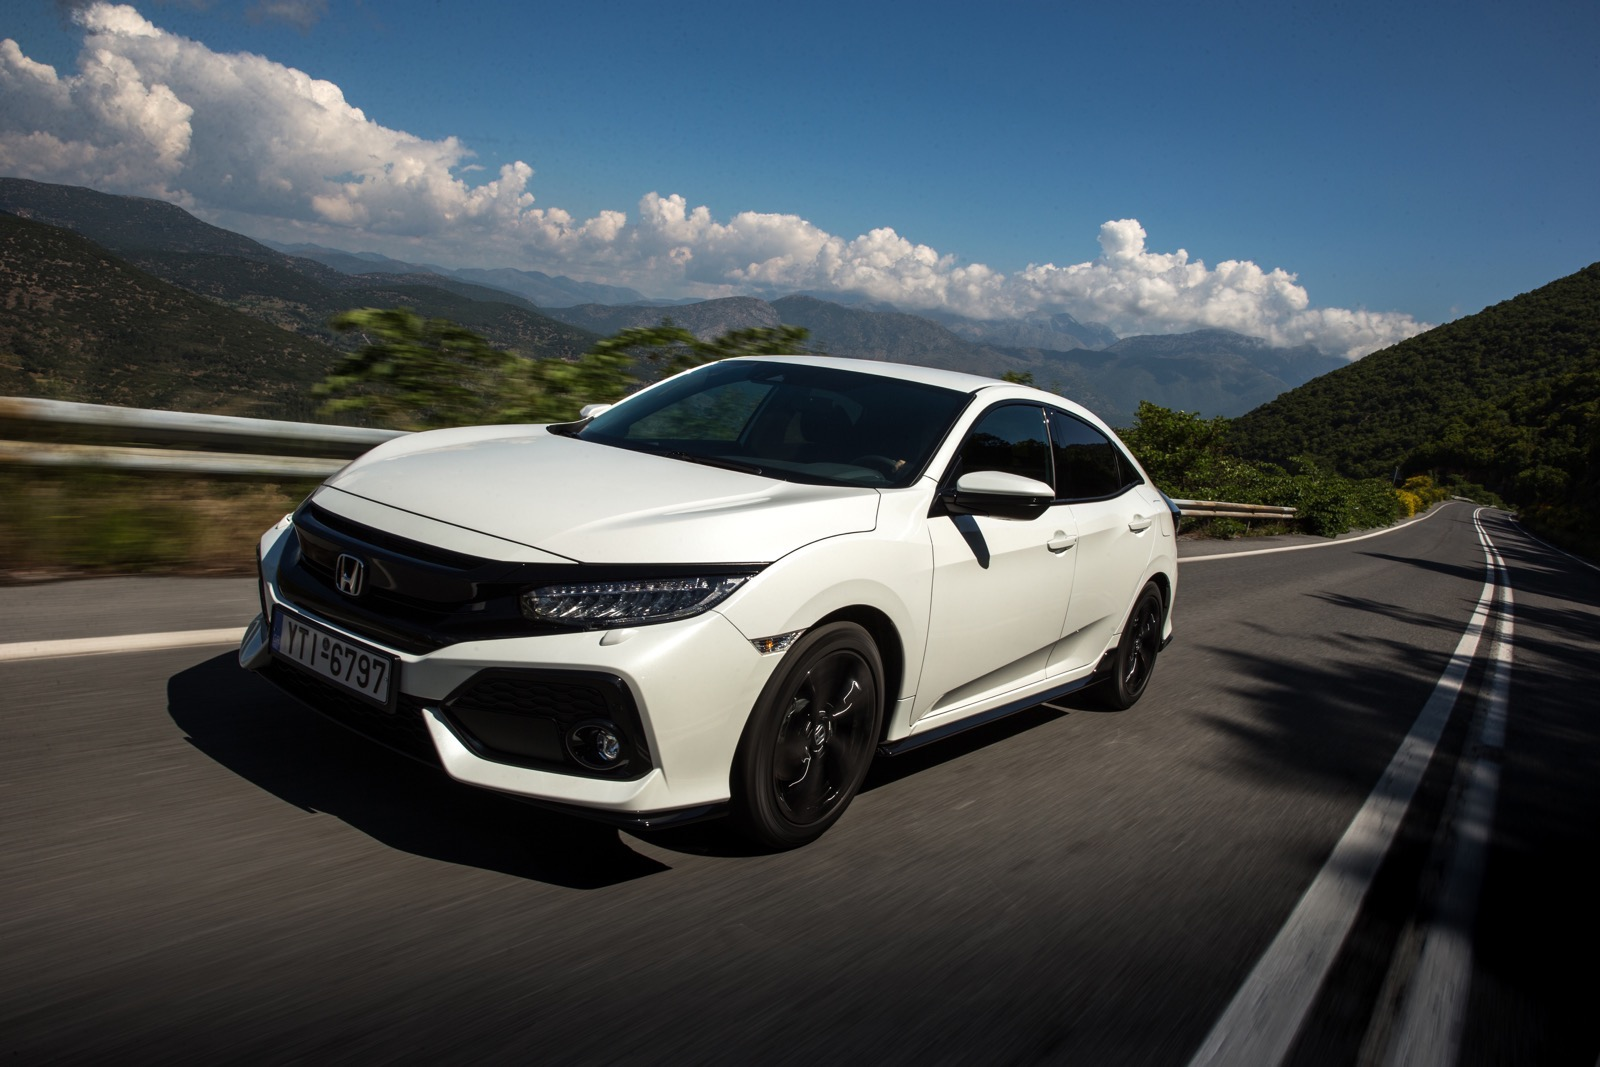 New_Honda_Civic_First_Drive_128